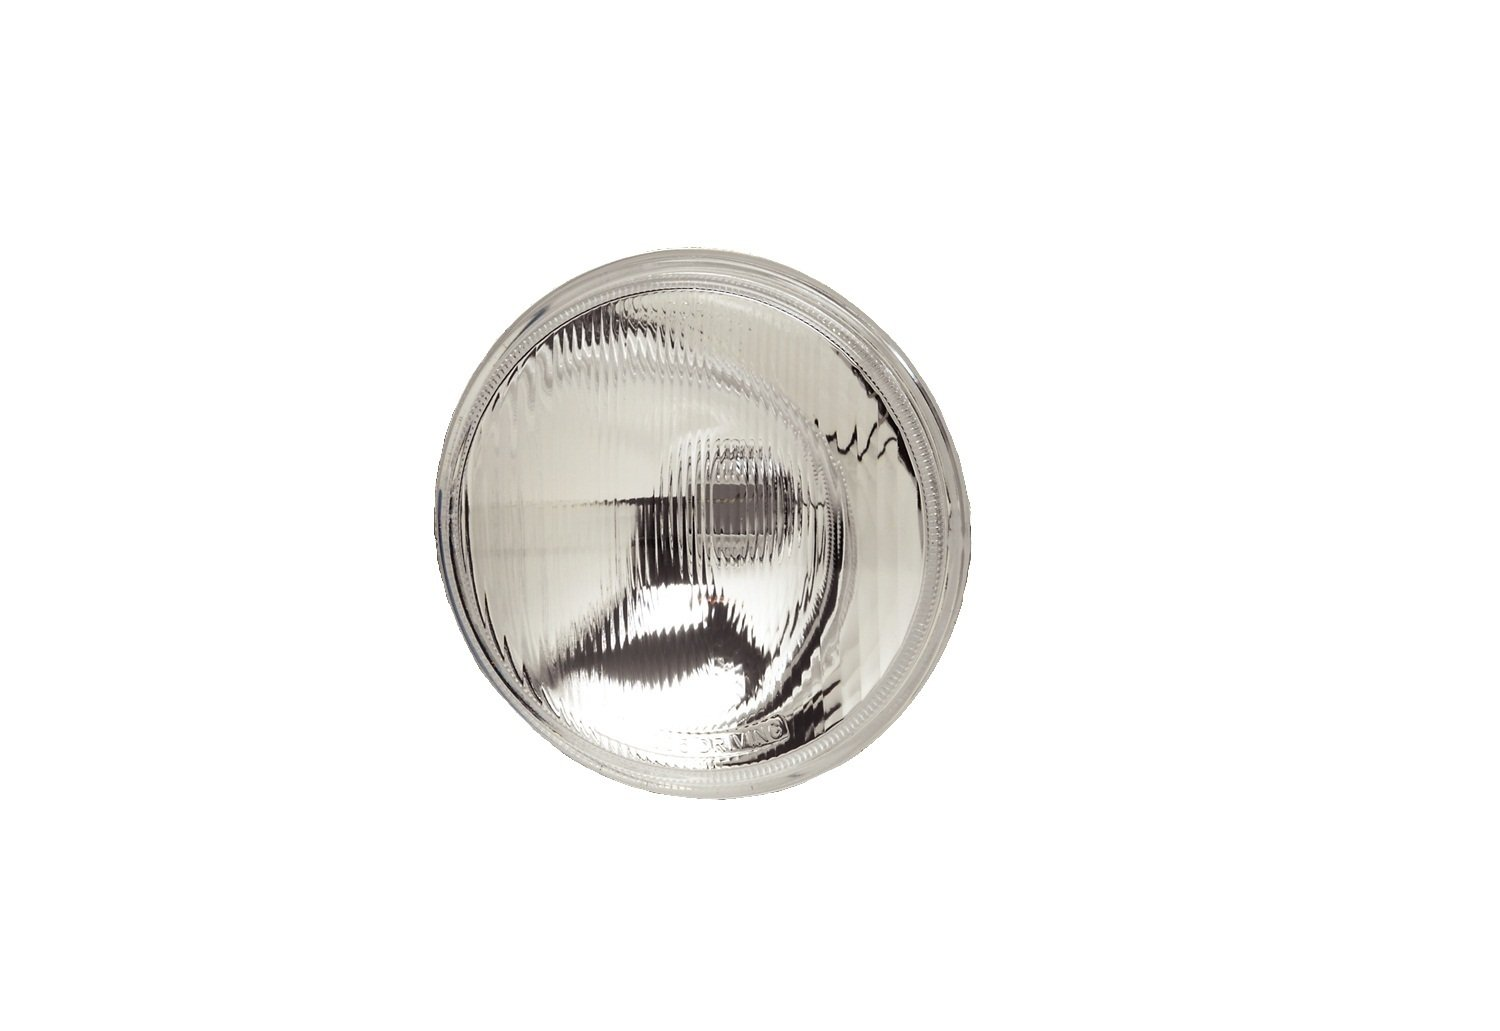 KC HiLiTES 4205 6 Replacement Driving Beam Pattern Glass Lens/Reflector with H3 Bulb Socket Adapter